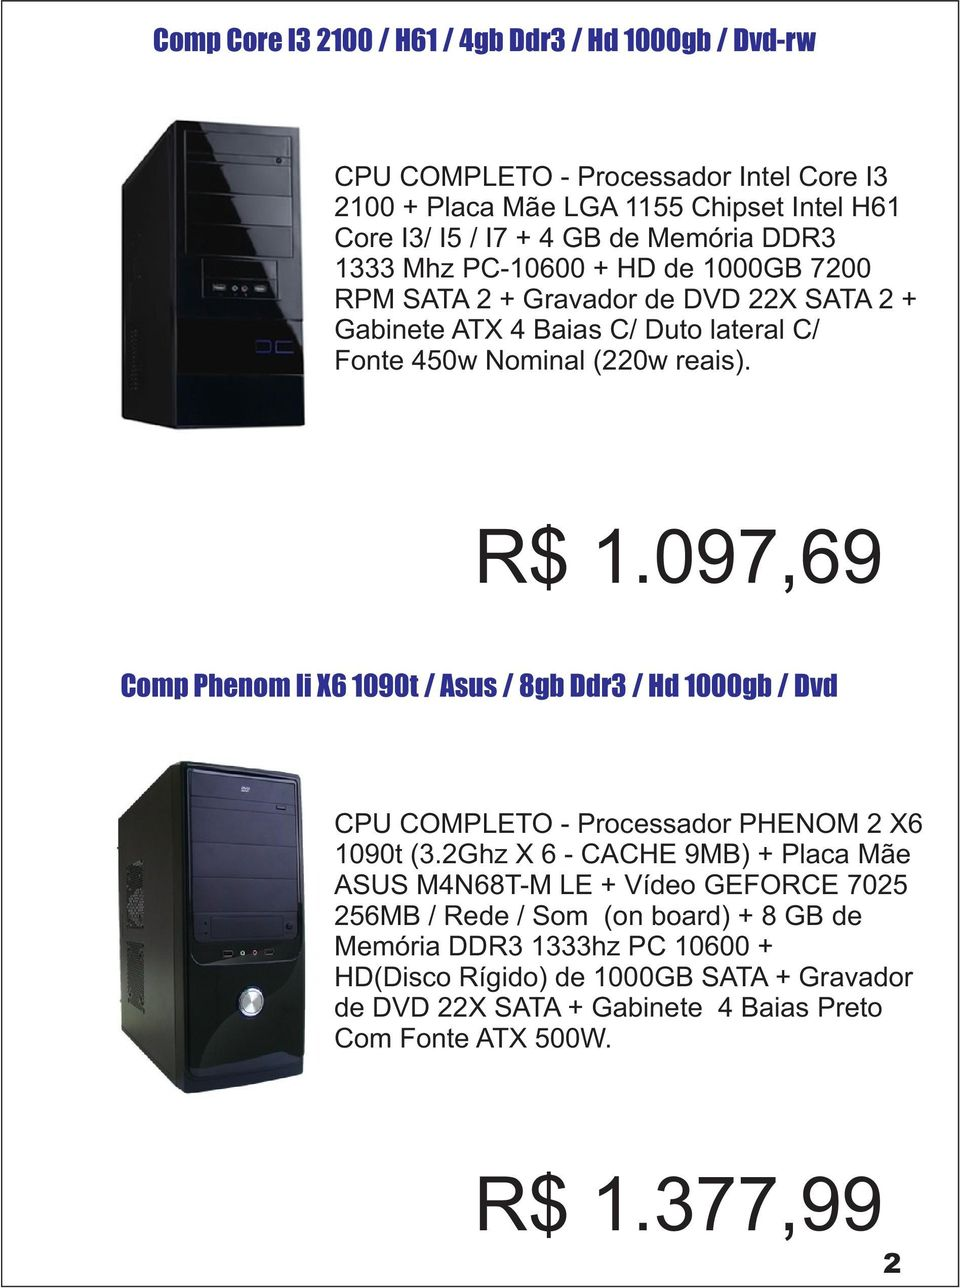 097,69 Comp Phenom Ii X6 1090t / Asus / 8gb Ddr3 / Hd 1000gb / Dvd CPU COMPLETO - Processador PHENOM 2 X6 1090t (3.